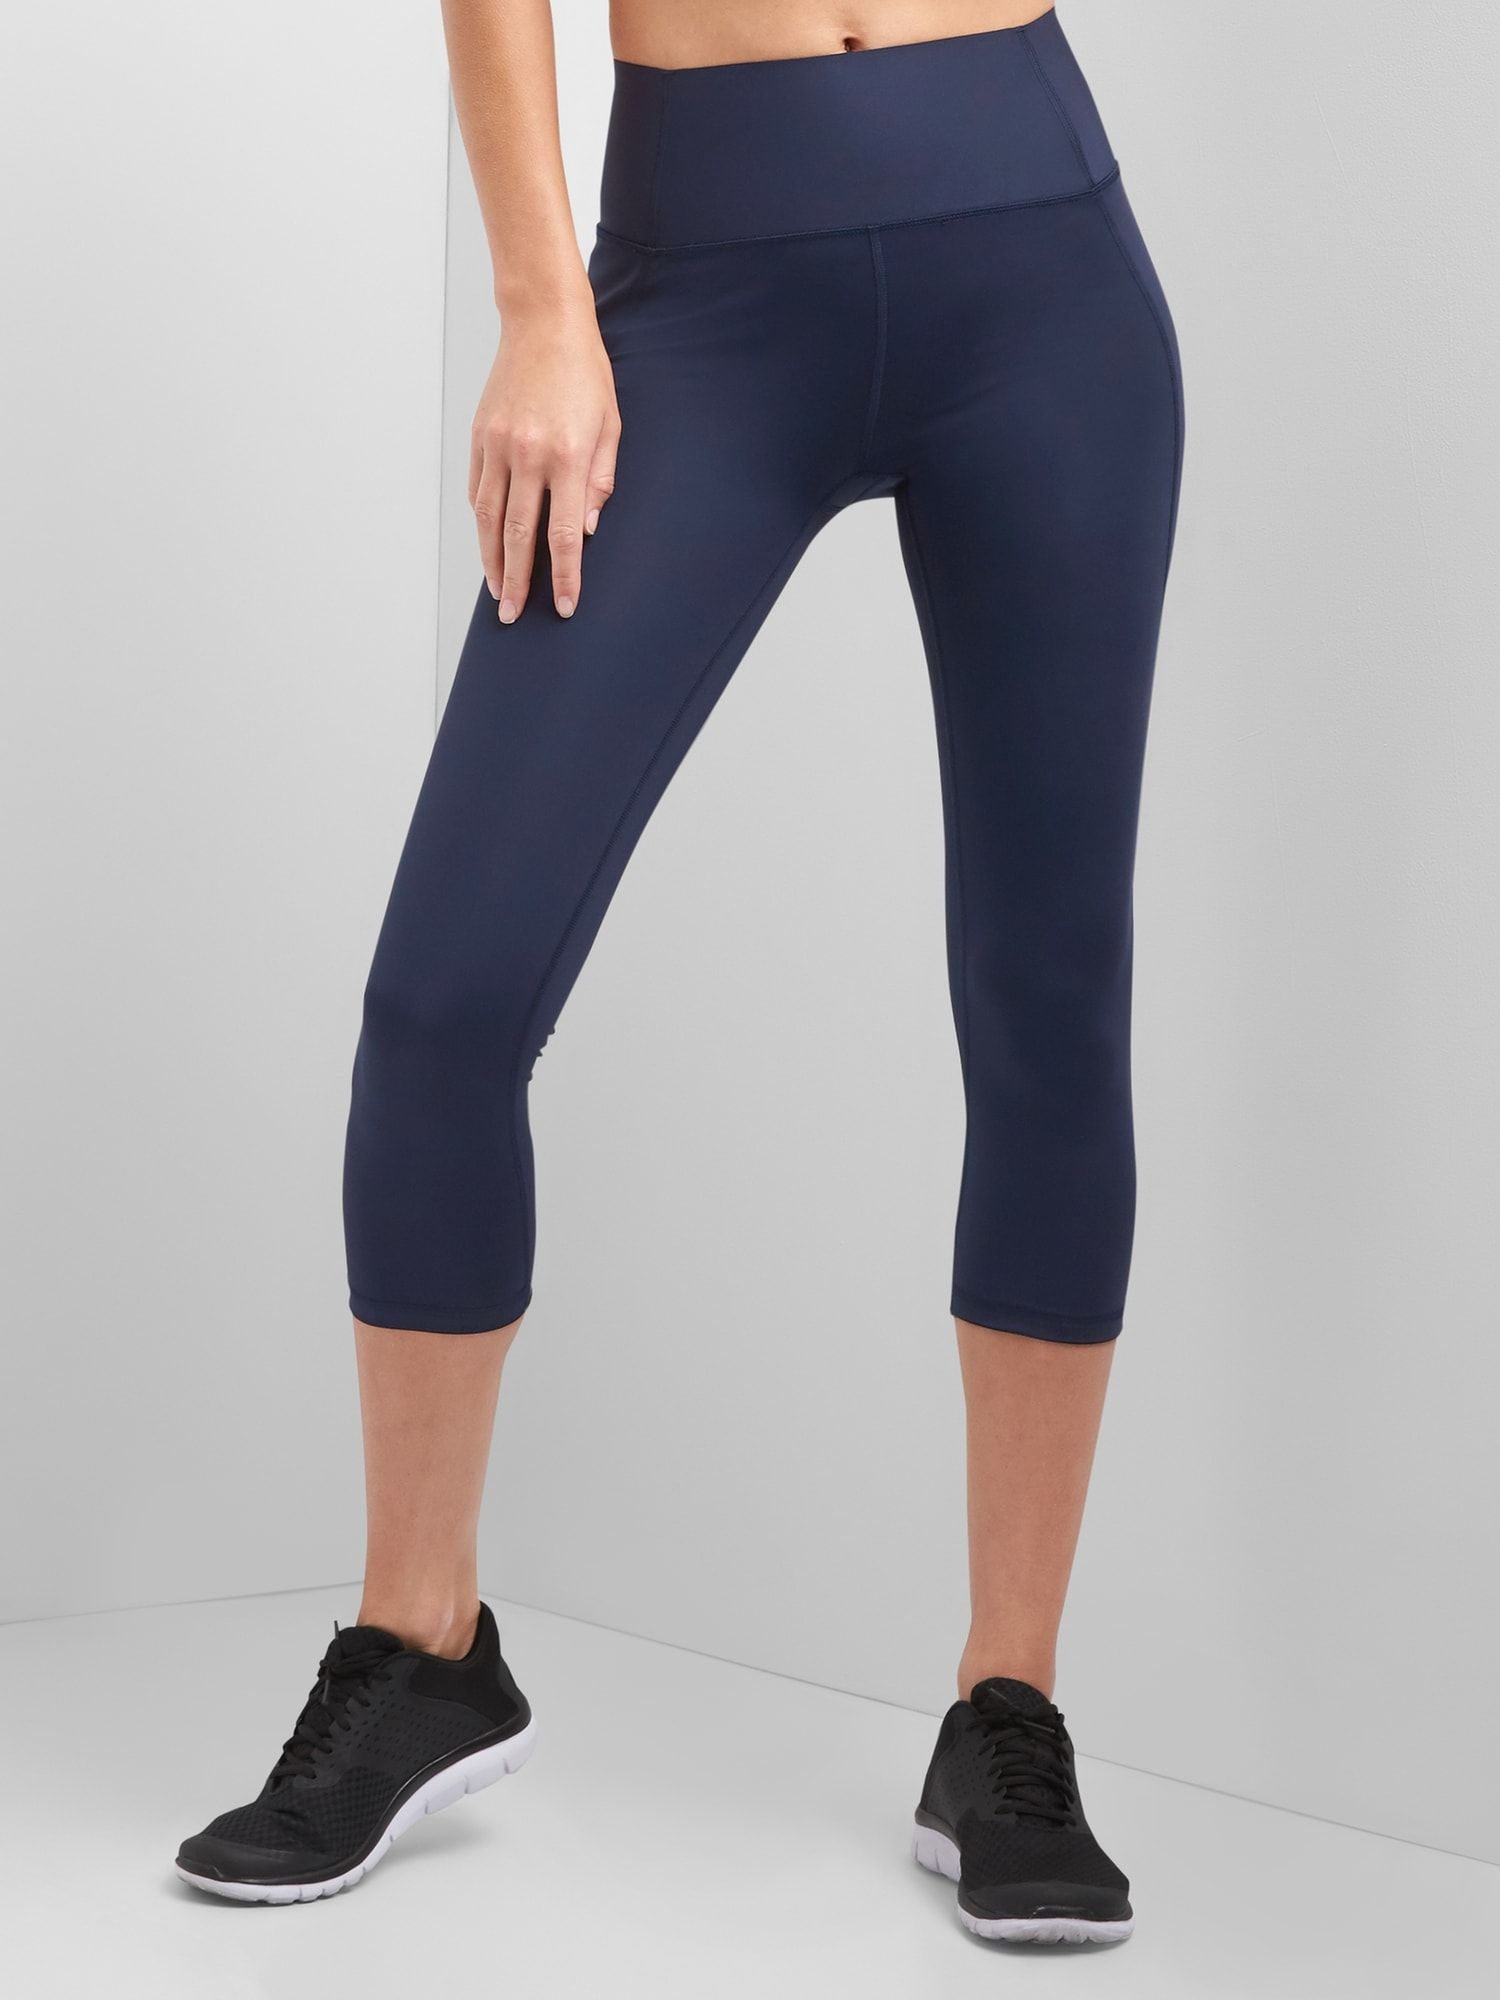 Gap Fit, GFast High Rise Capris in Sculpt Revolution with